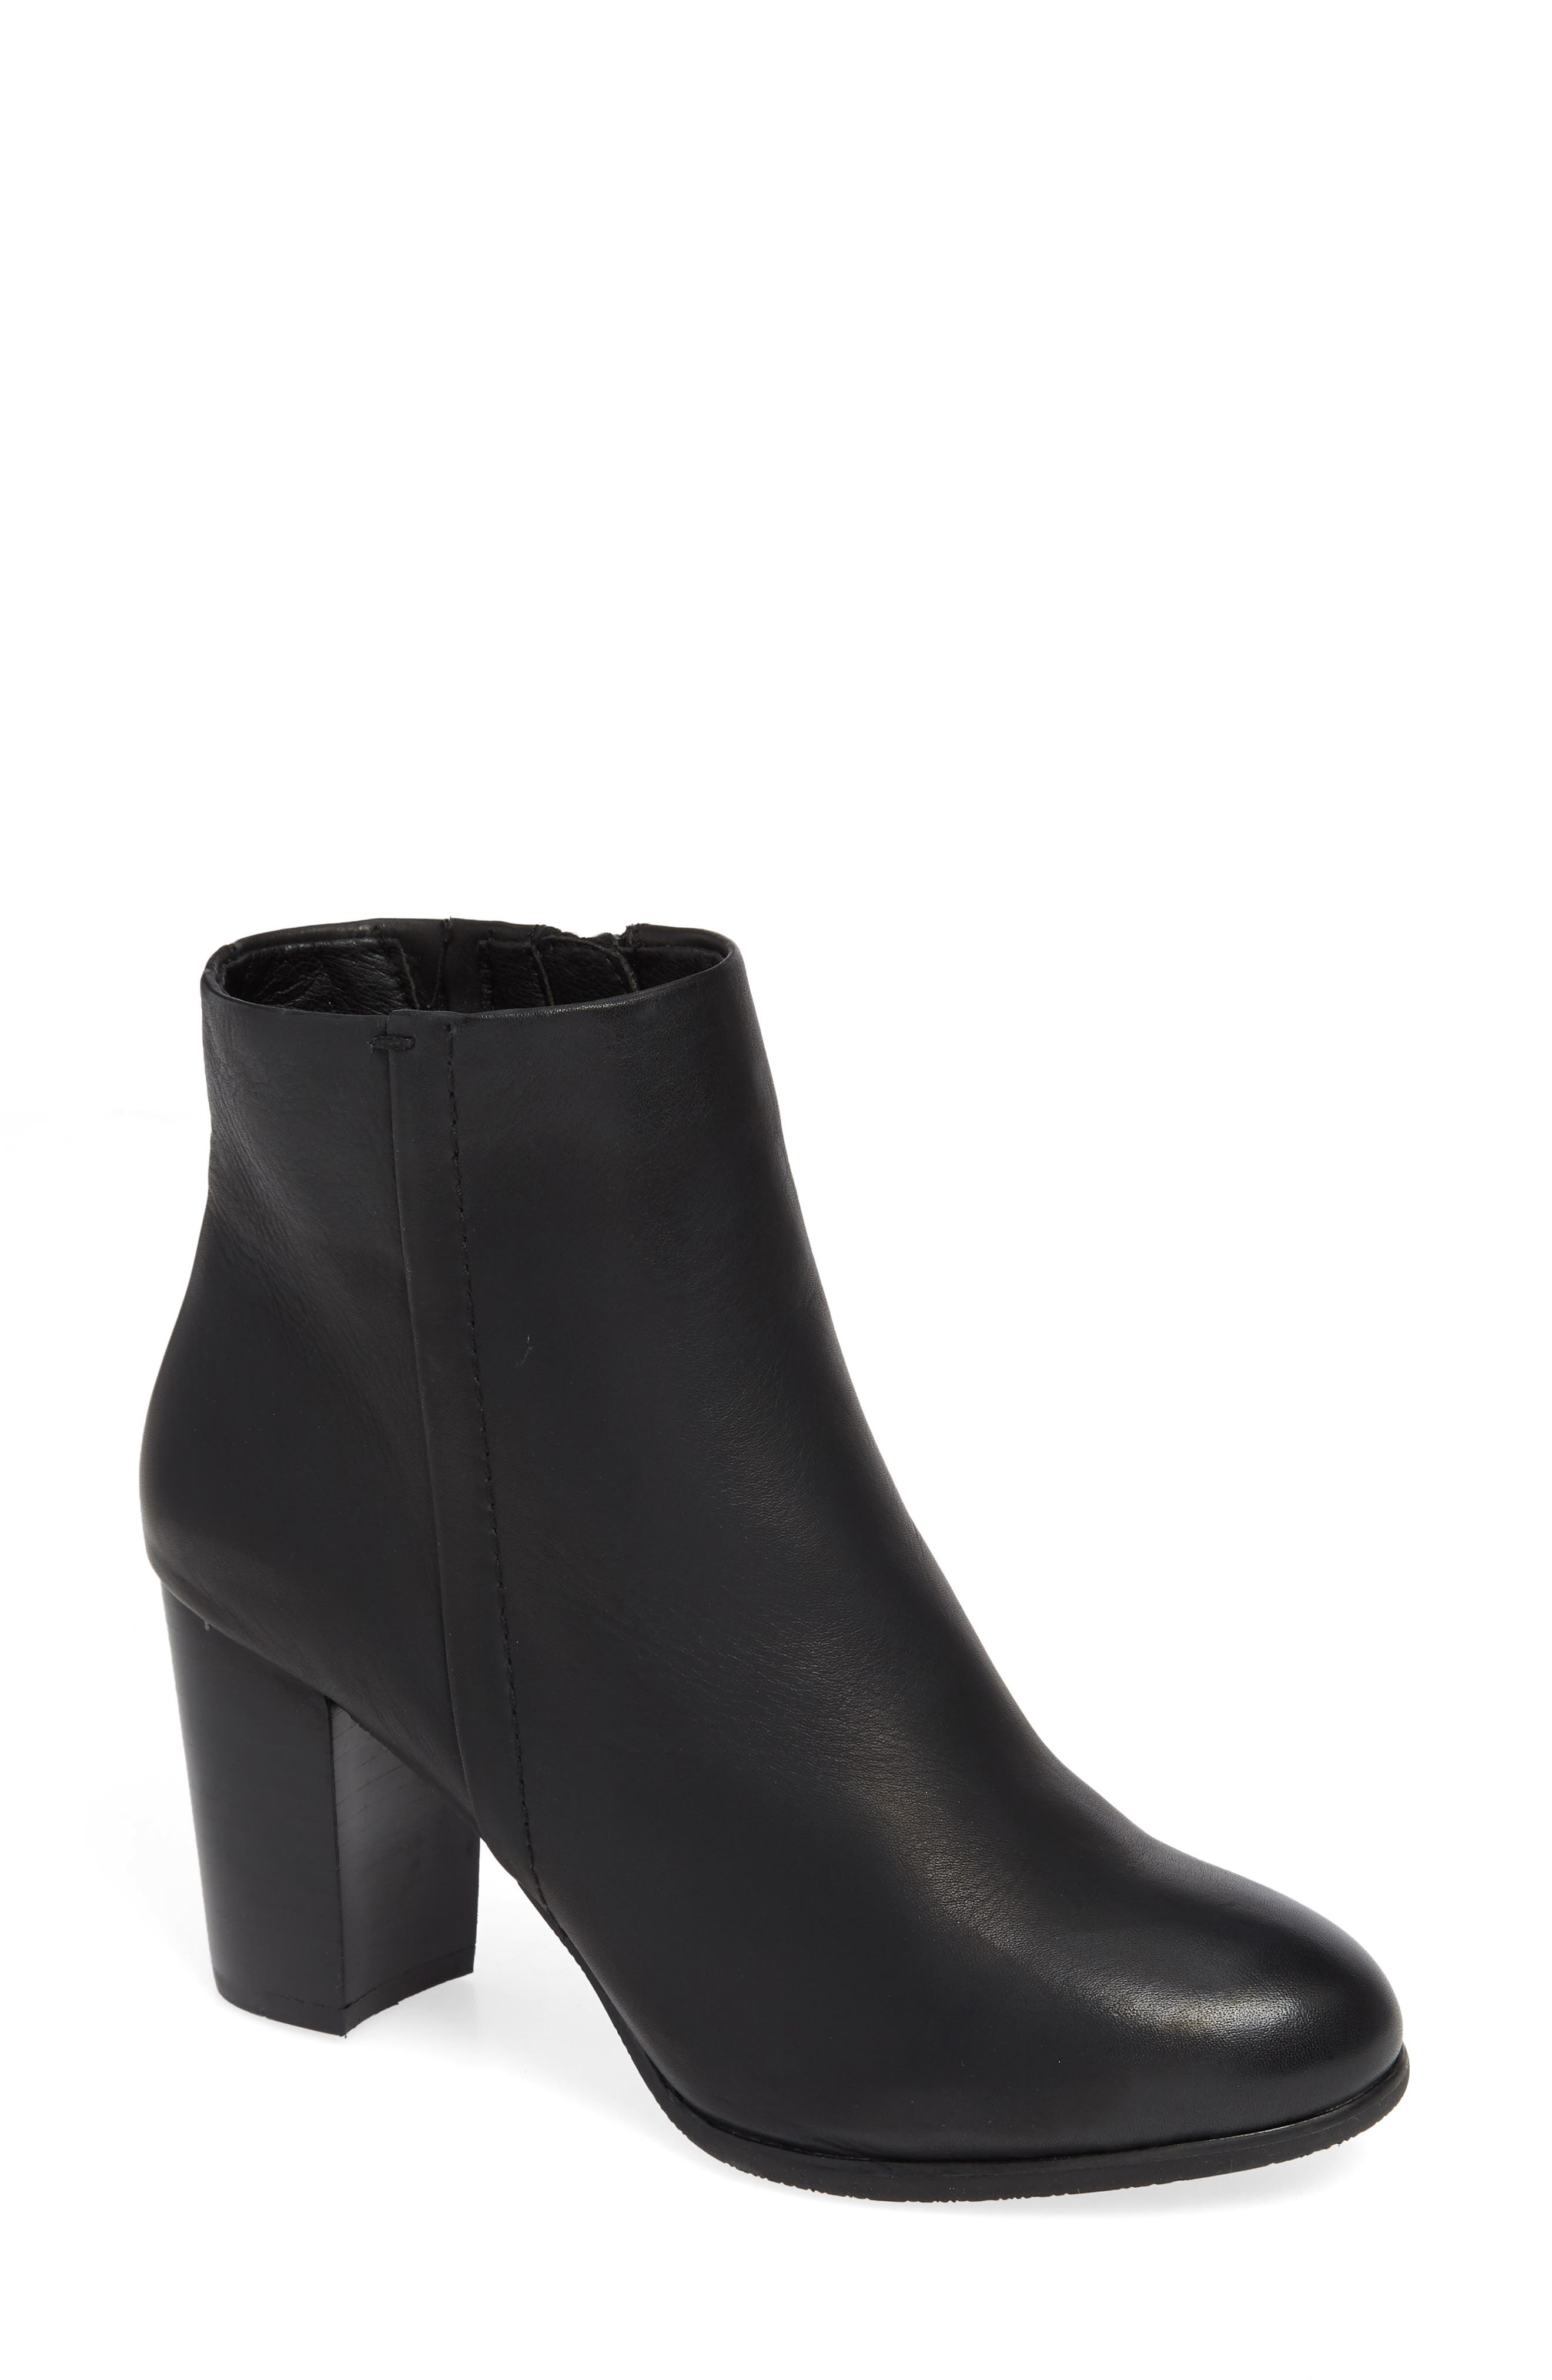 VIONIC Kennedy Ankle Bootie, Main, color, BLACK LEATHER